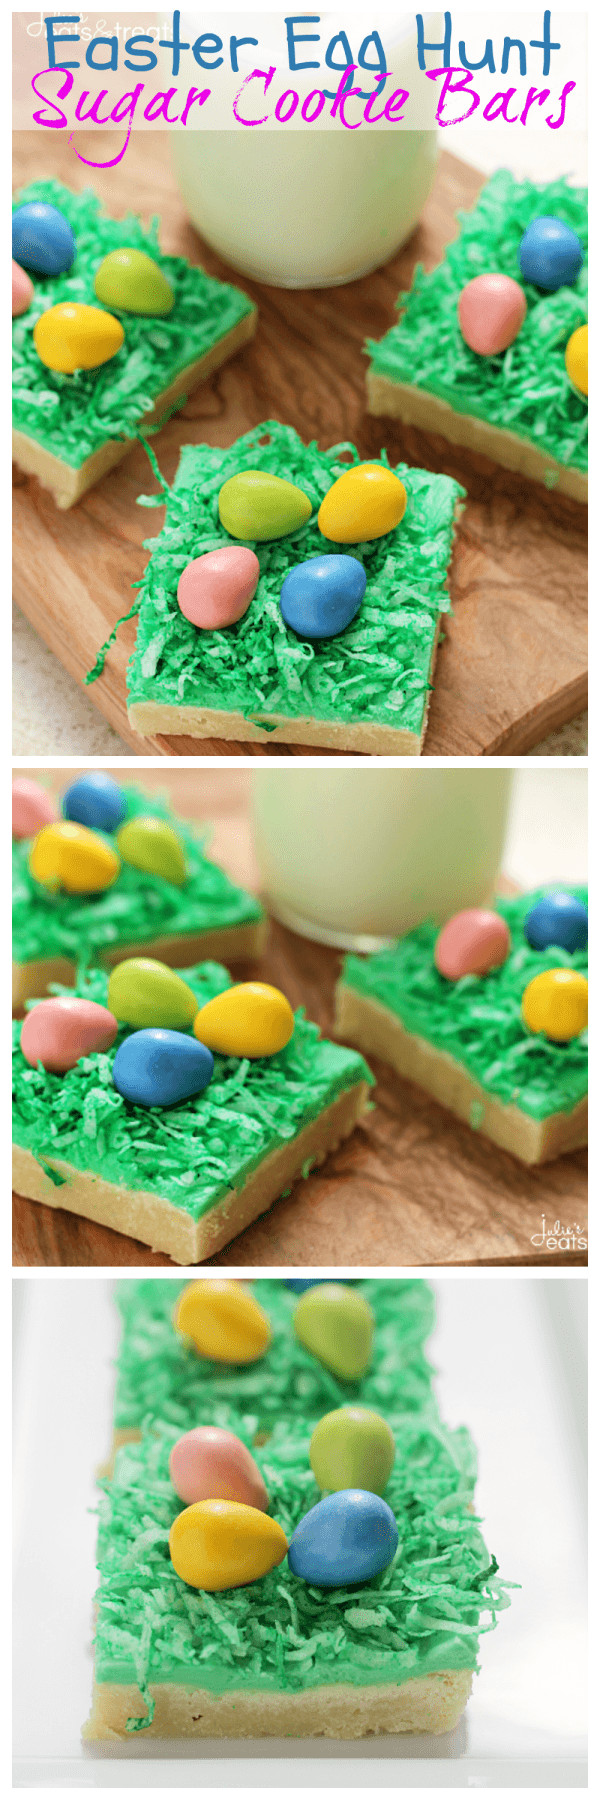 Easter Egg Sugar Cookies  Easter Egg Hunt Sugar Cookie Bars s and